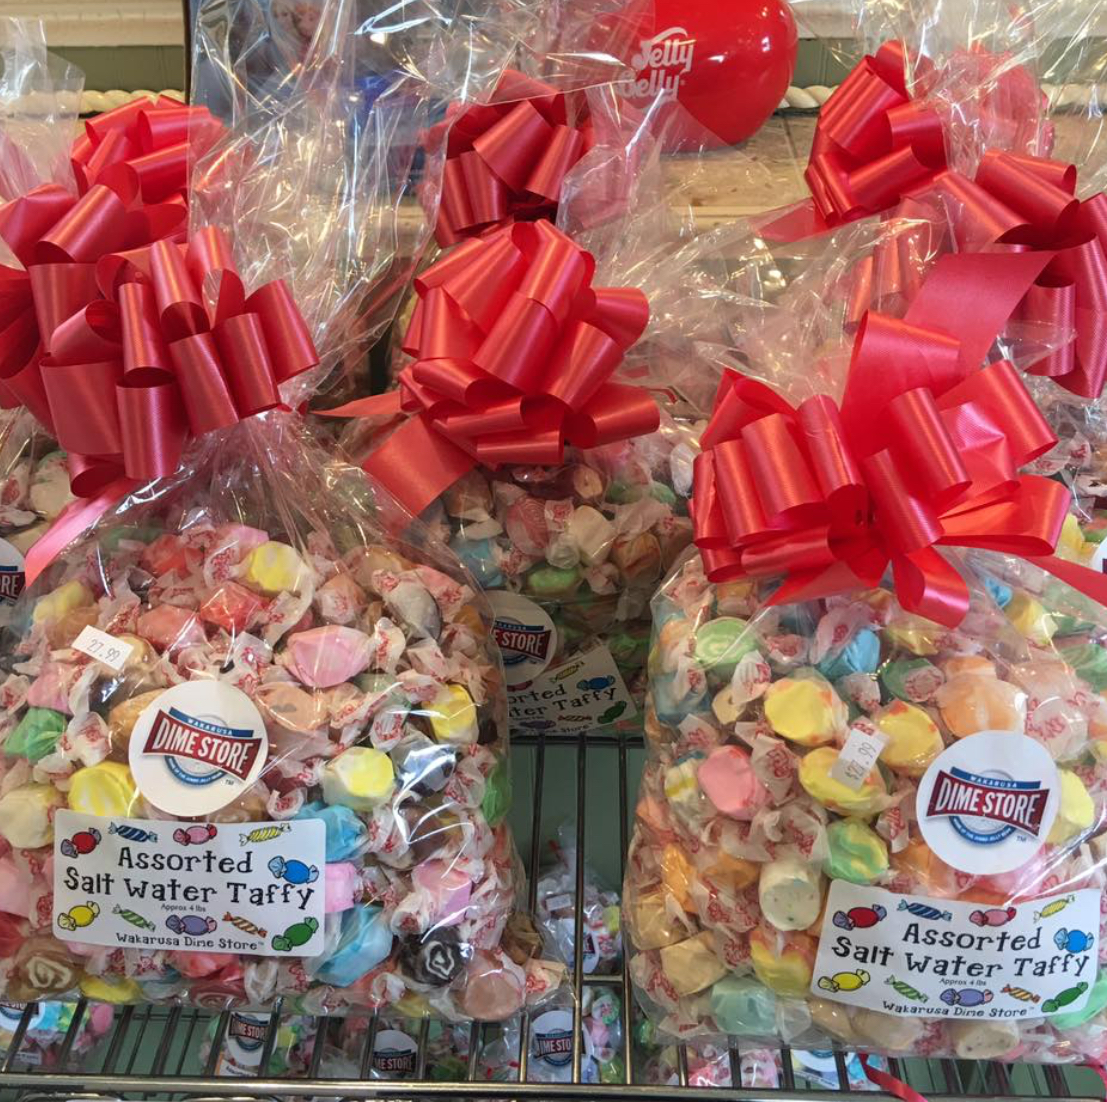 Let us send a gift to someone special . Custom packaging and gift bags are a speciality at The Wakarusa Dime Store. Choose your favorite flavors of Saltwater Taffy or from any of our amazing candy assortments.